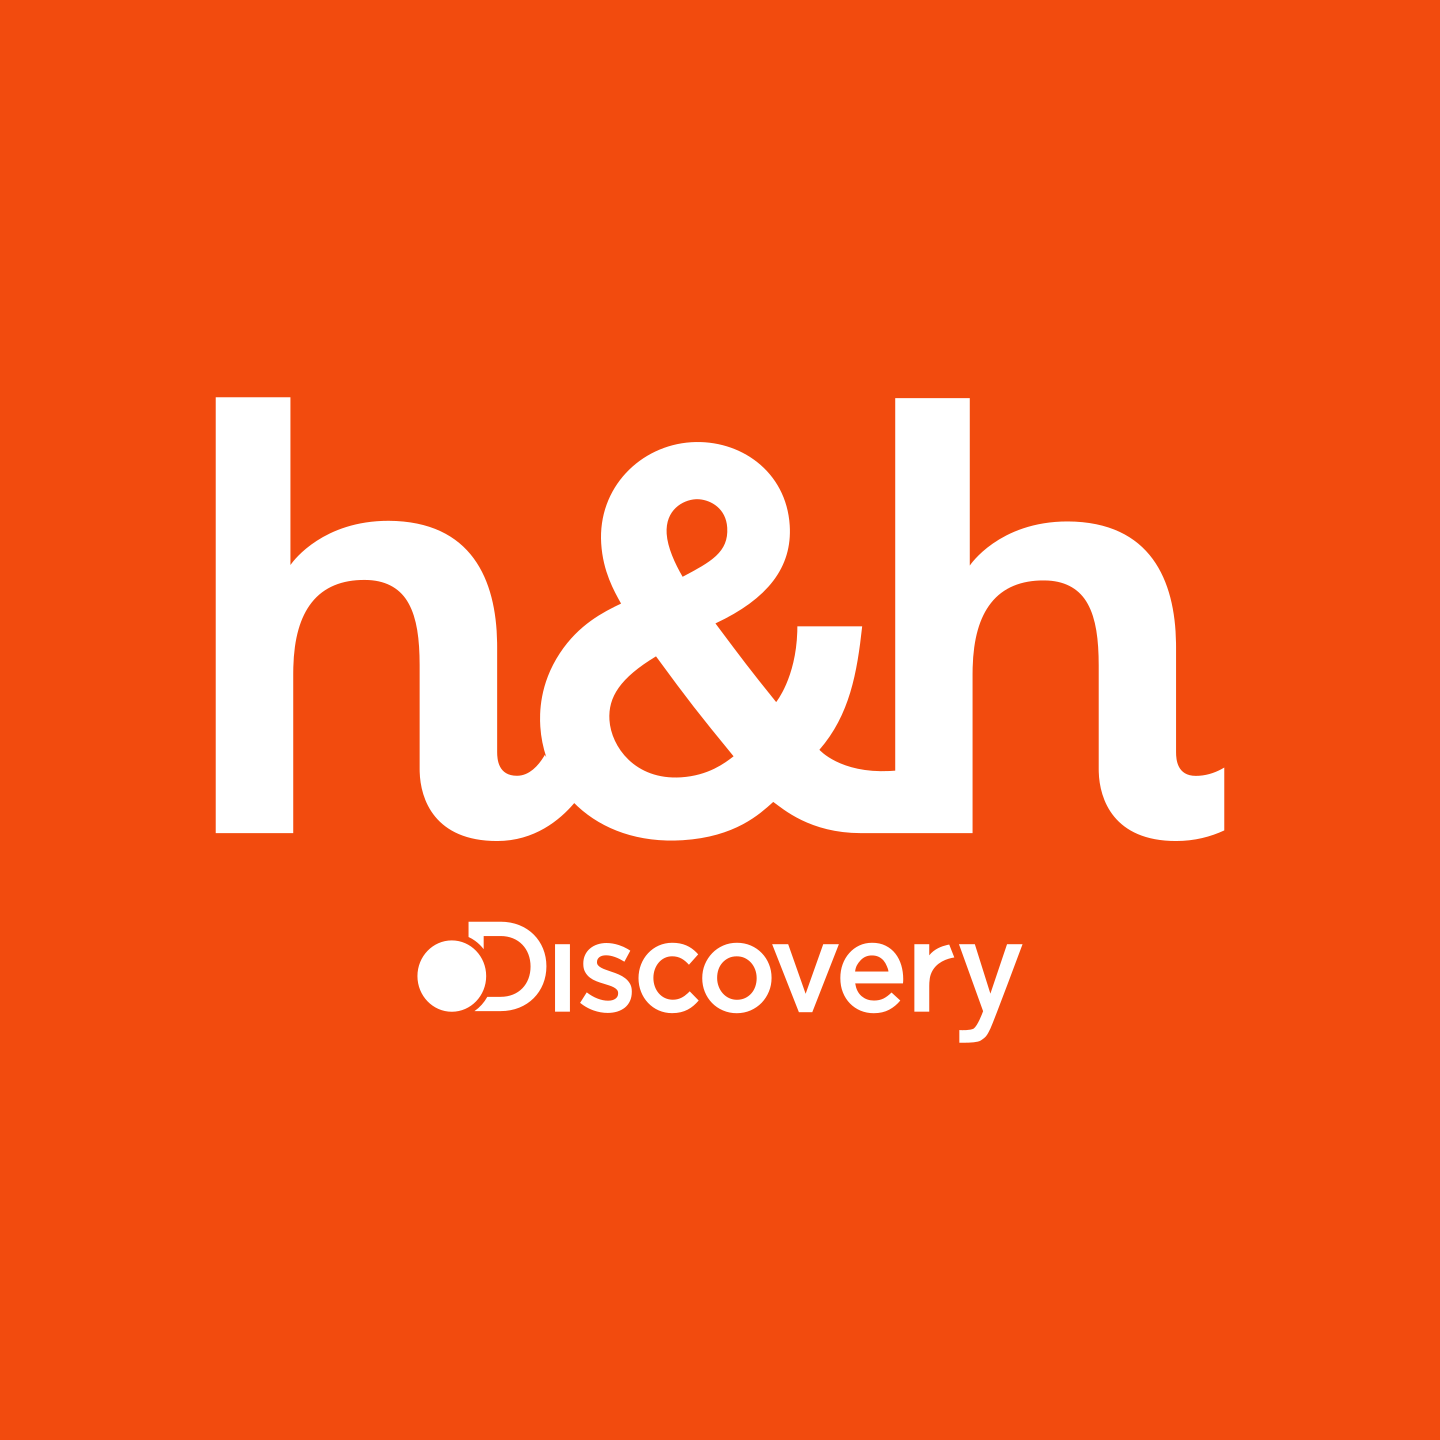 discovery home and health logo 3 - Discovery Home & Health Logo